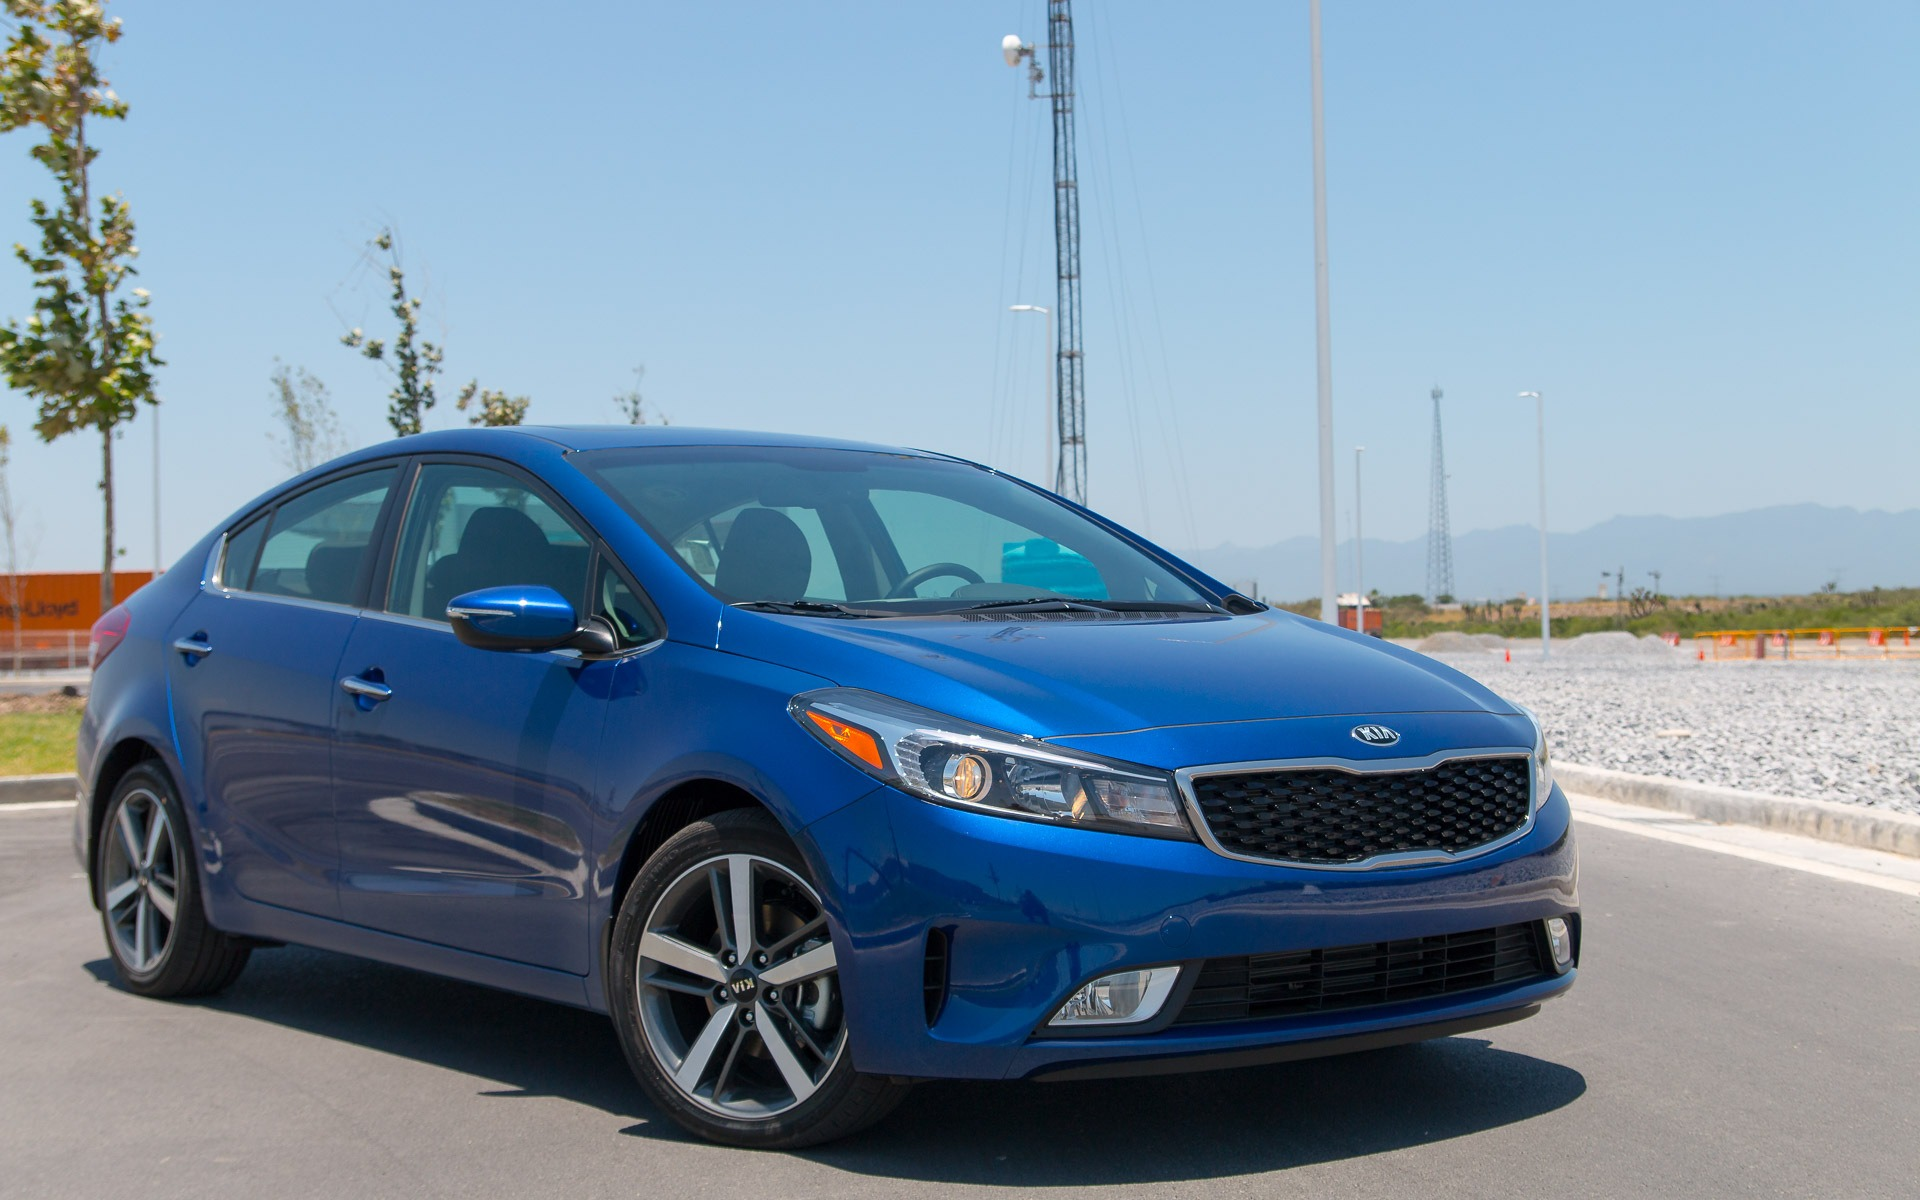 sale new kia for fl lx forte vin sedan with cool sebring excellent or lease